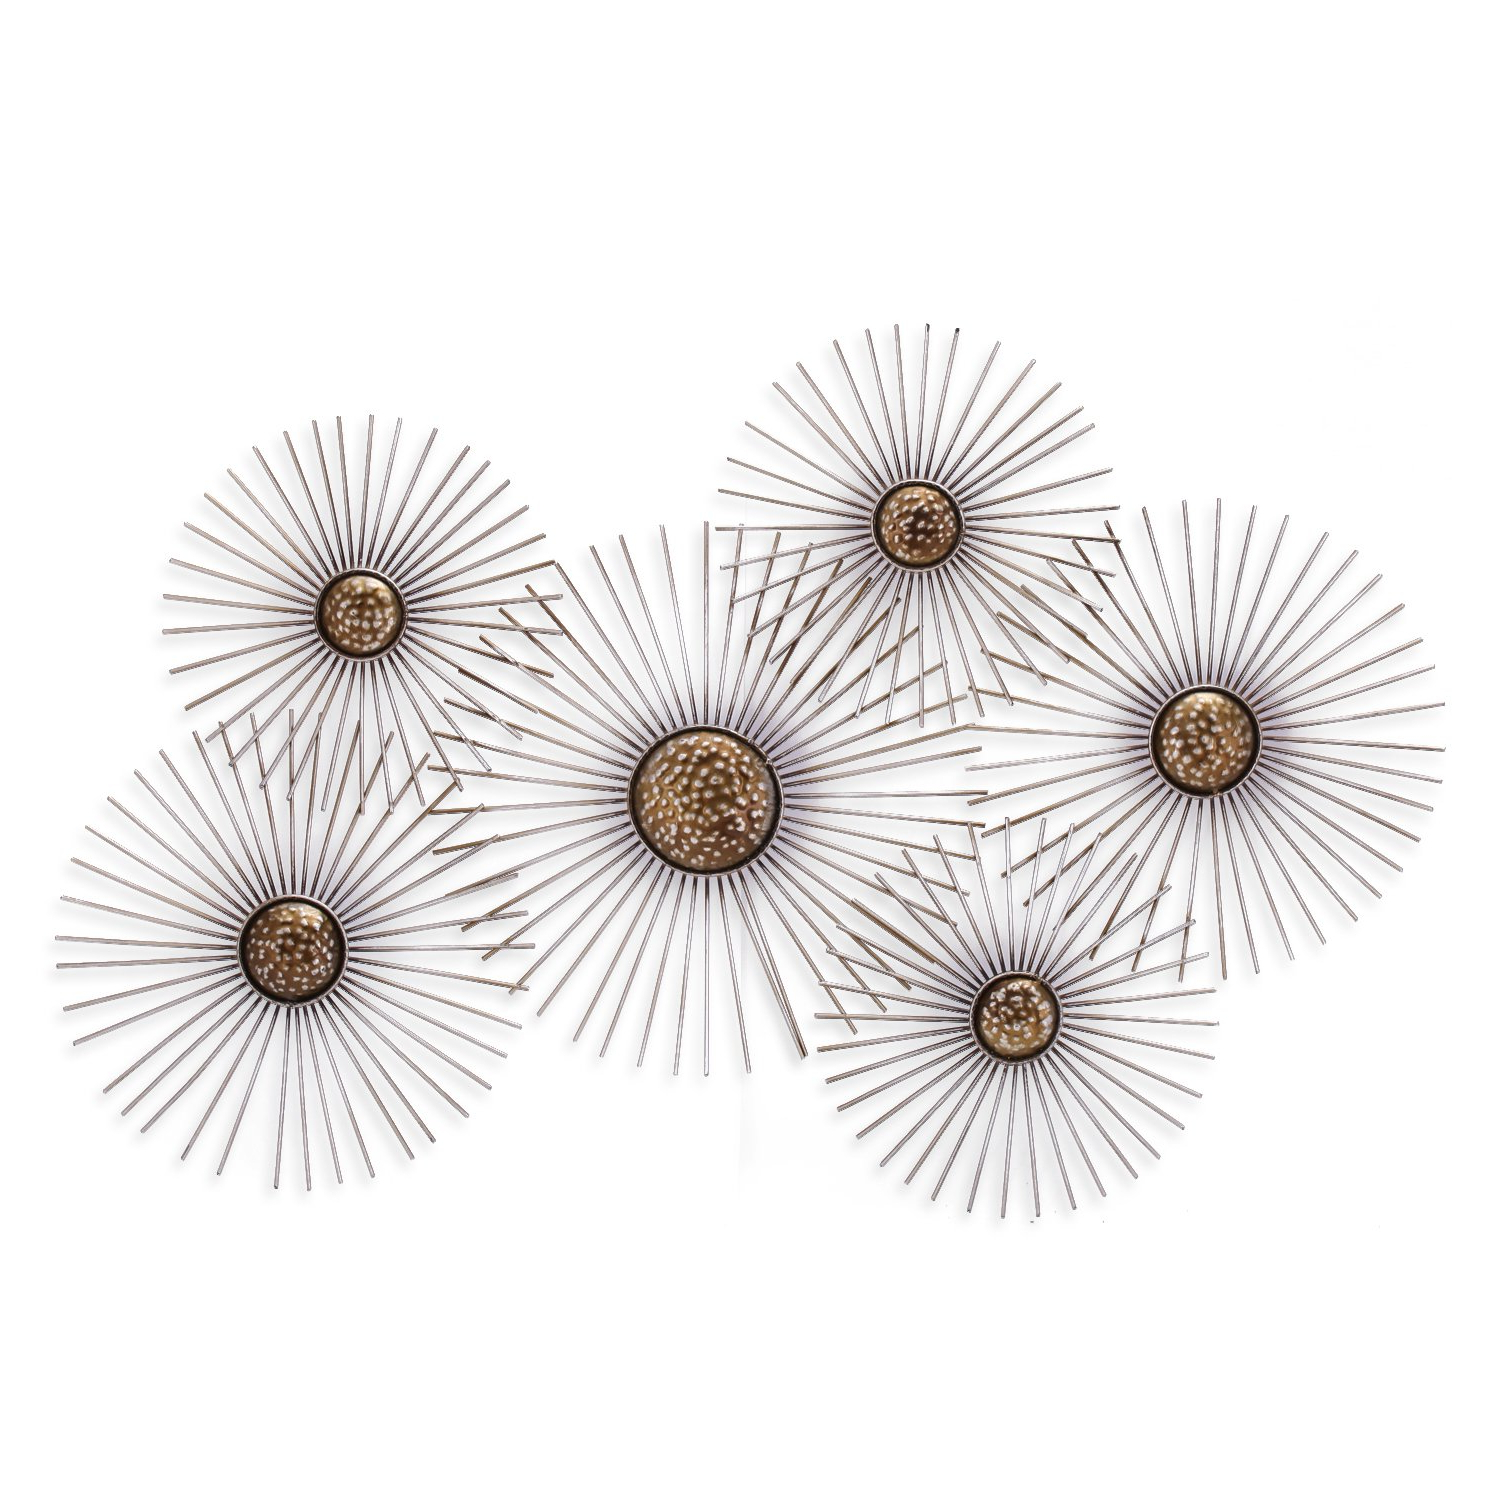 Most Popular 2 Piece Starburst Wall Decor Sets Intended For Amazon: Asense Flower Starburst Metal Wall Art Sculptures Home (View 12 of 20)